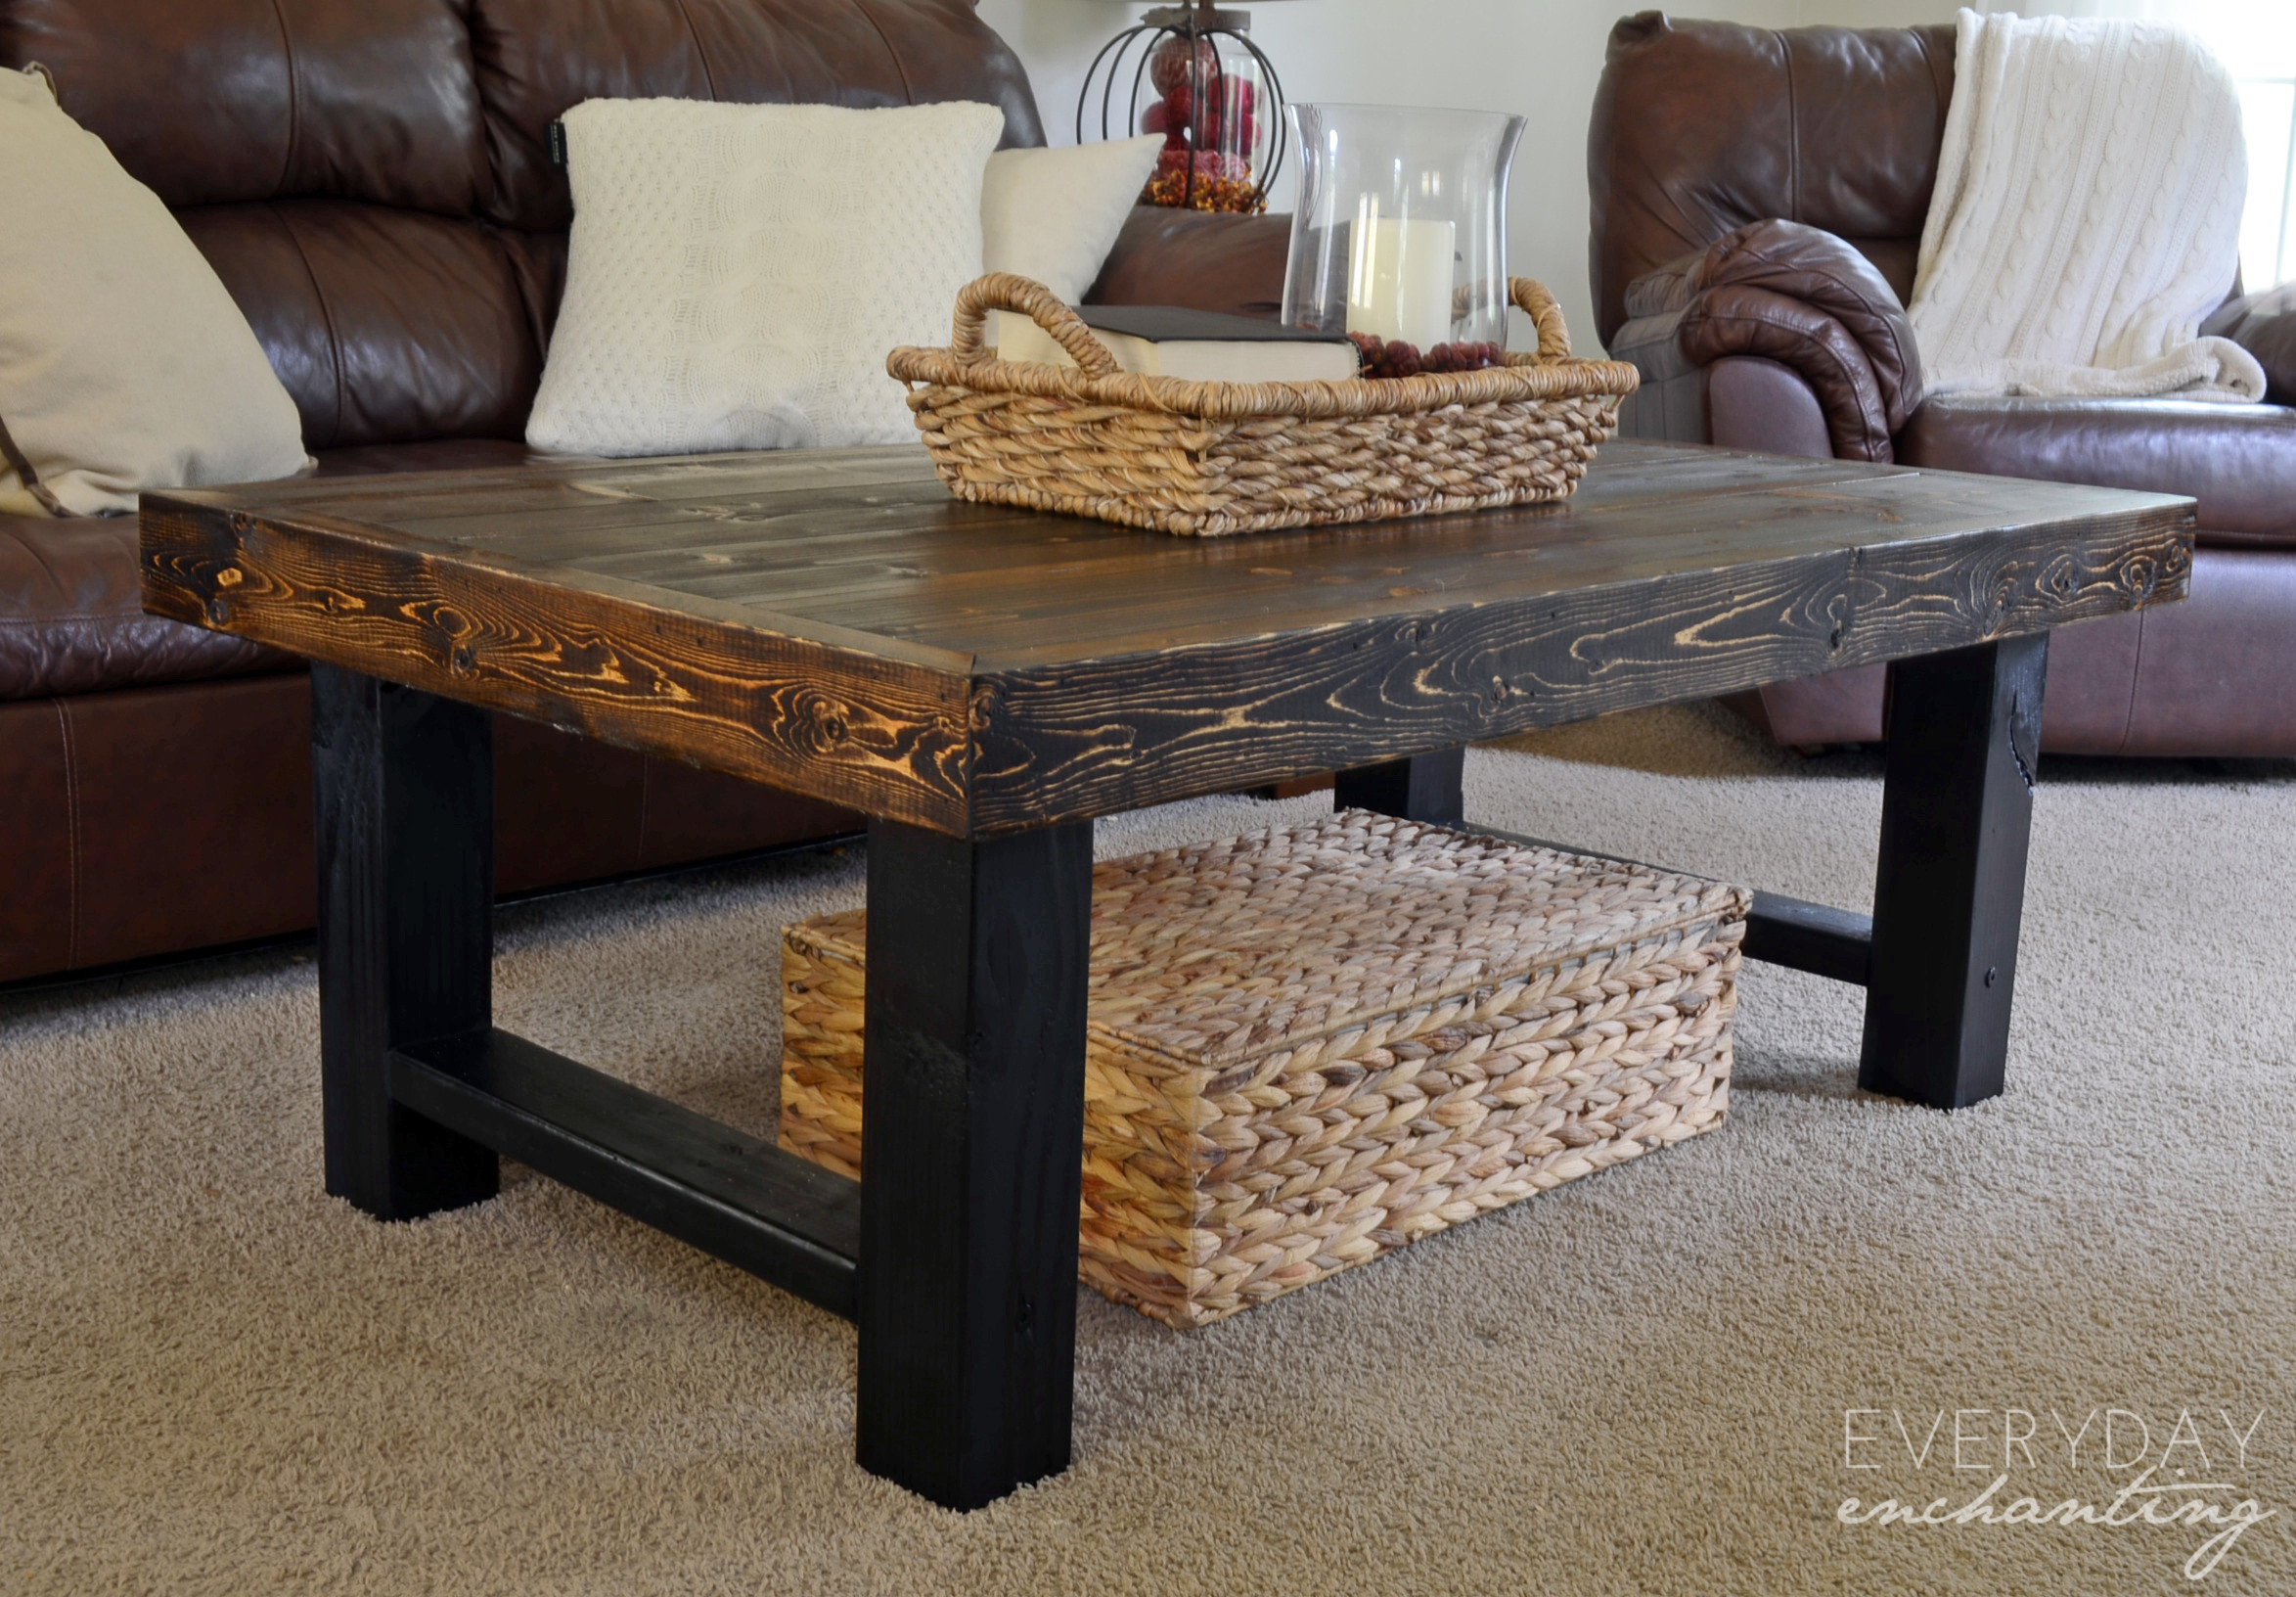 Best ideas about DIY Wood Table . Save or Pin Remodelaholic Now.